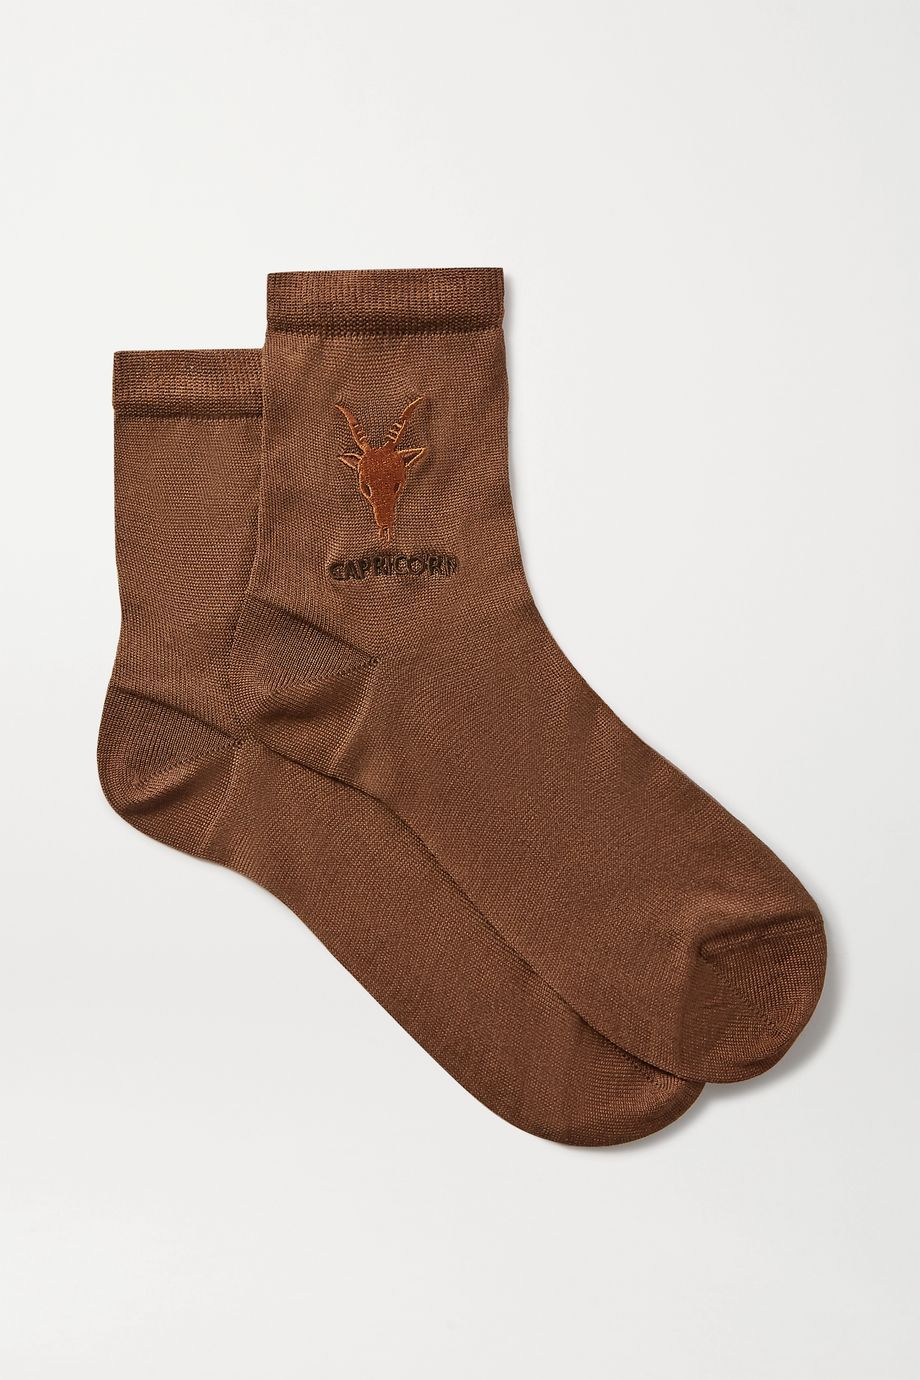 Maria La Rosa Capricorn embroidered silk-blend socks